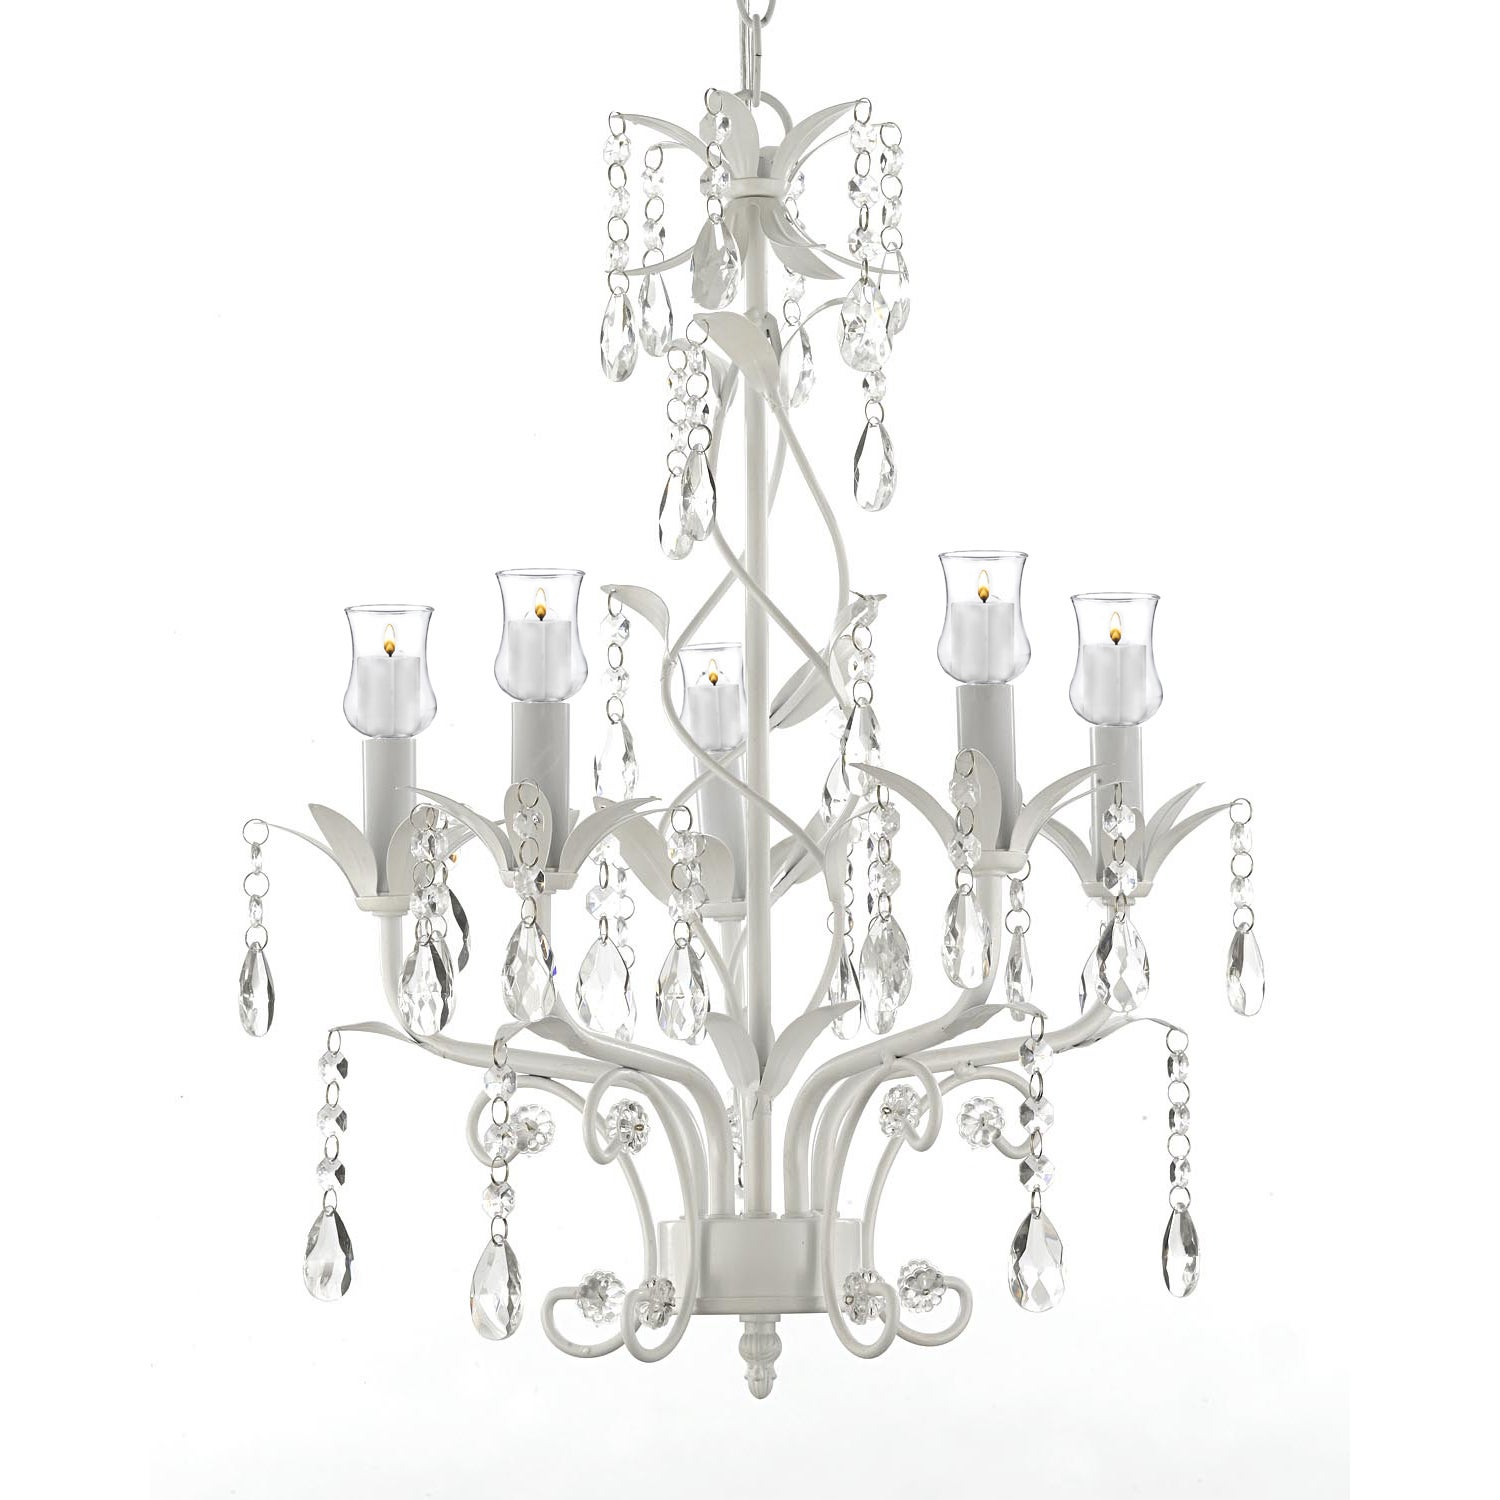 Lane Wrought Iron & Crystal 5 Light White Chandelier W/ C...